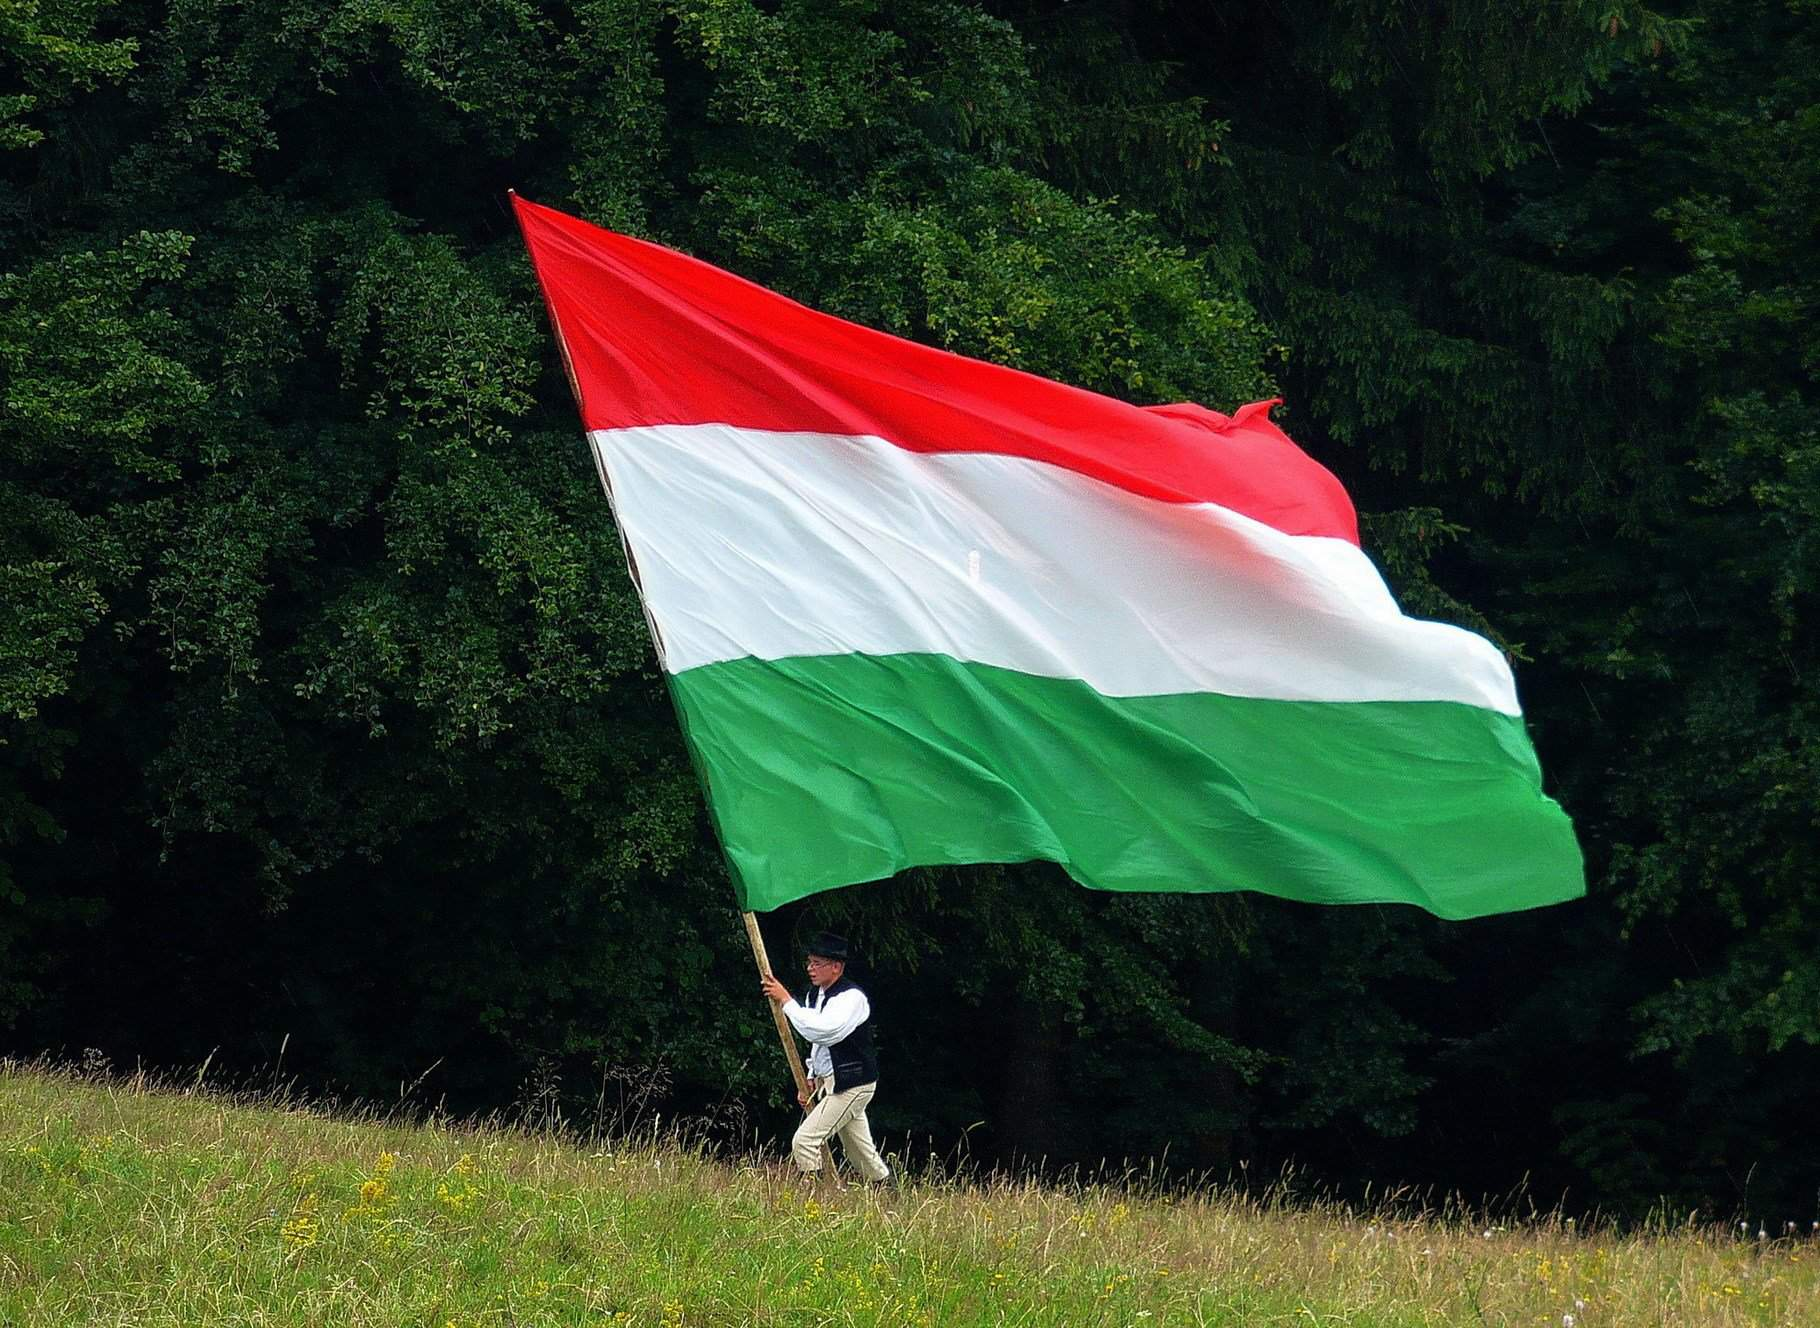 It's official: Hungarian is one of the most difficult